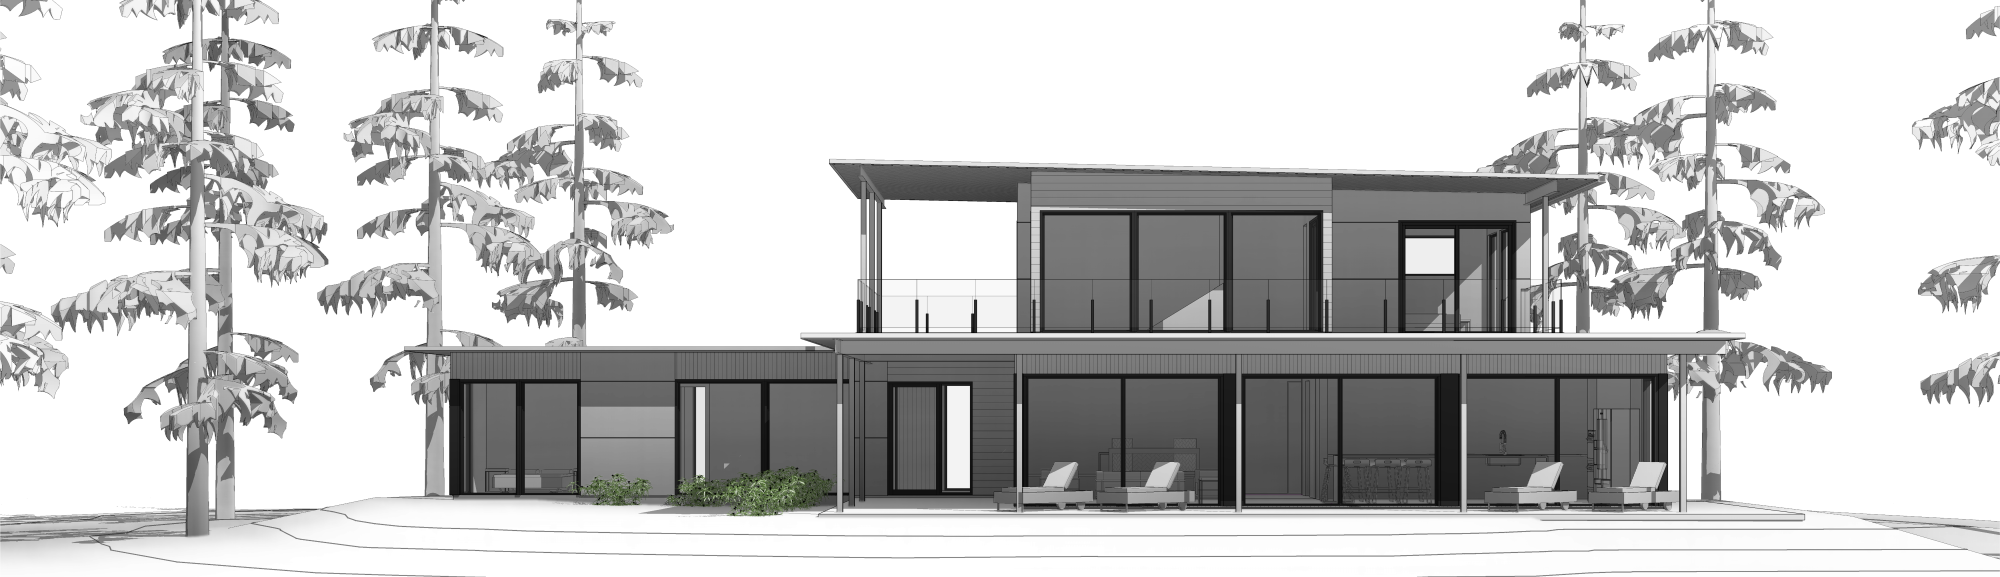 Modern Prefab homes with designer style for any custom home build ...